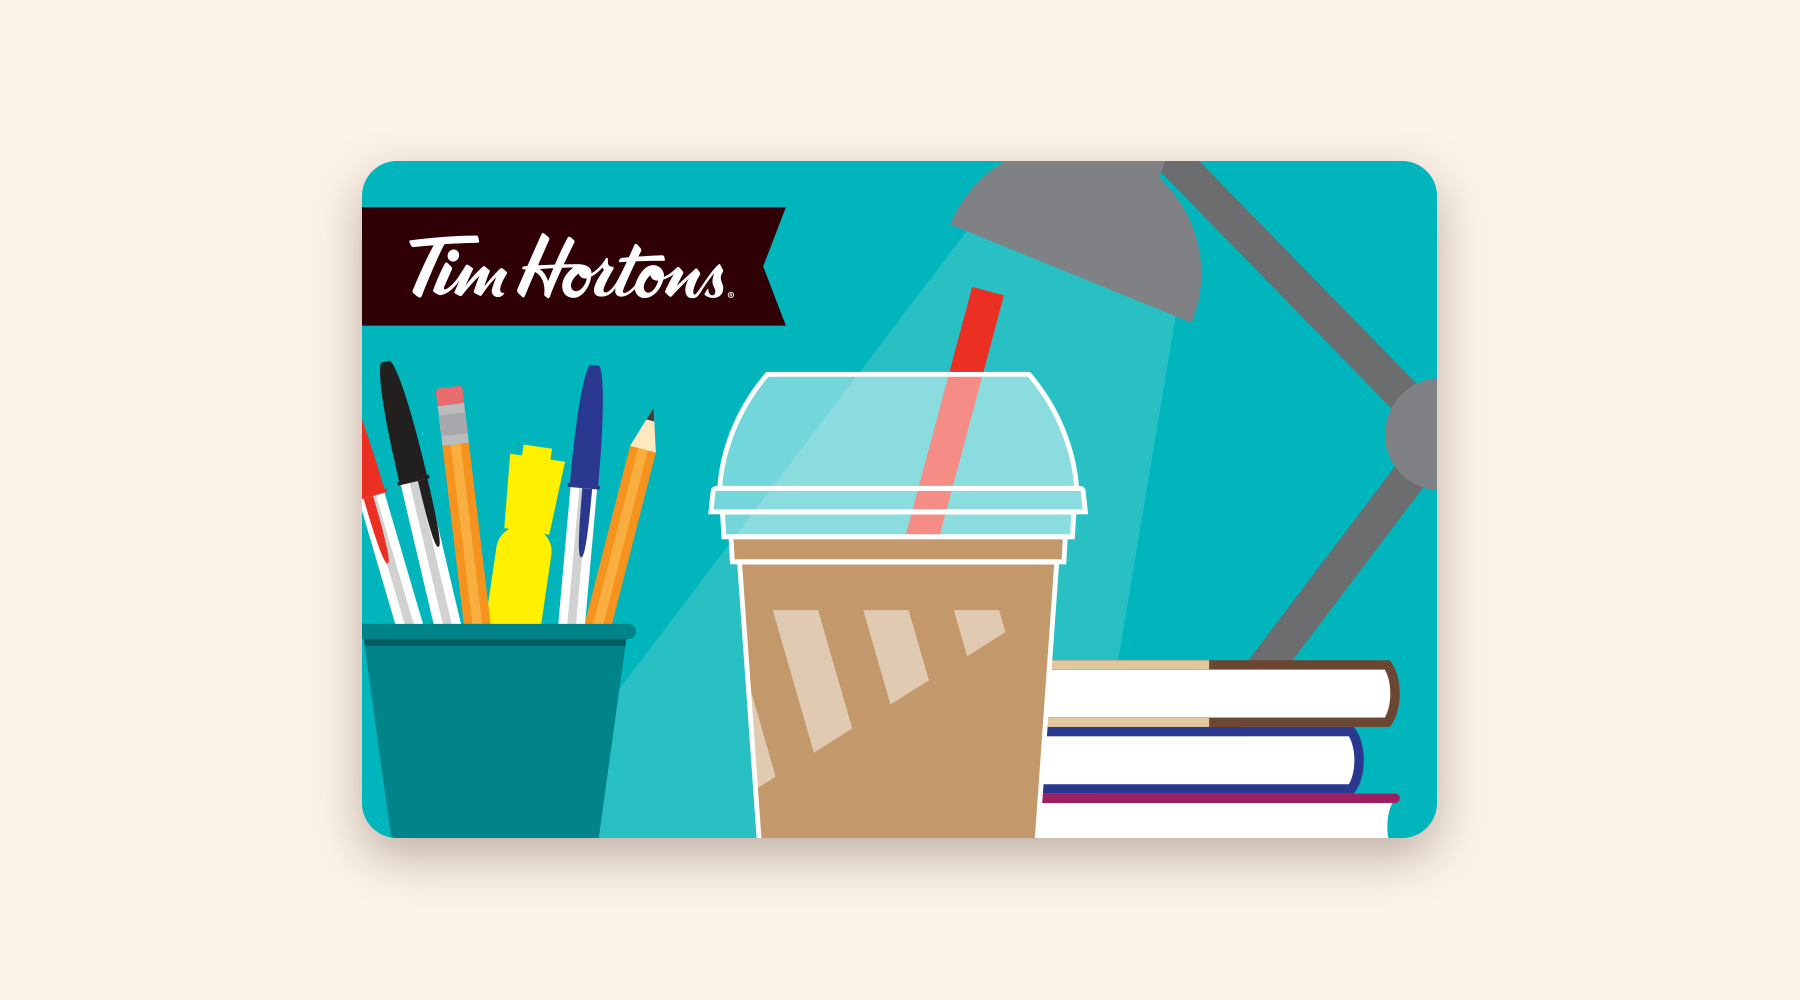 Gift card with an iced coffee in front of a pile of books and office supplies